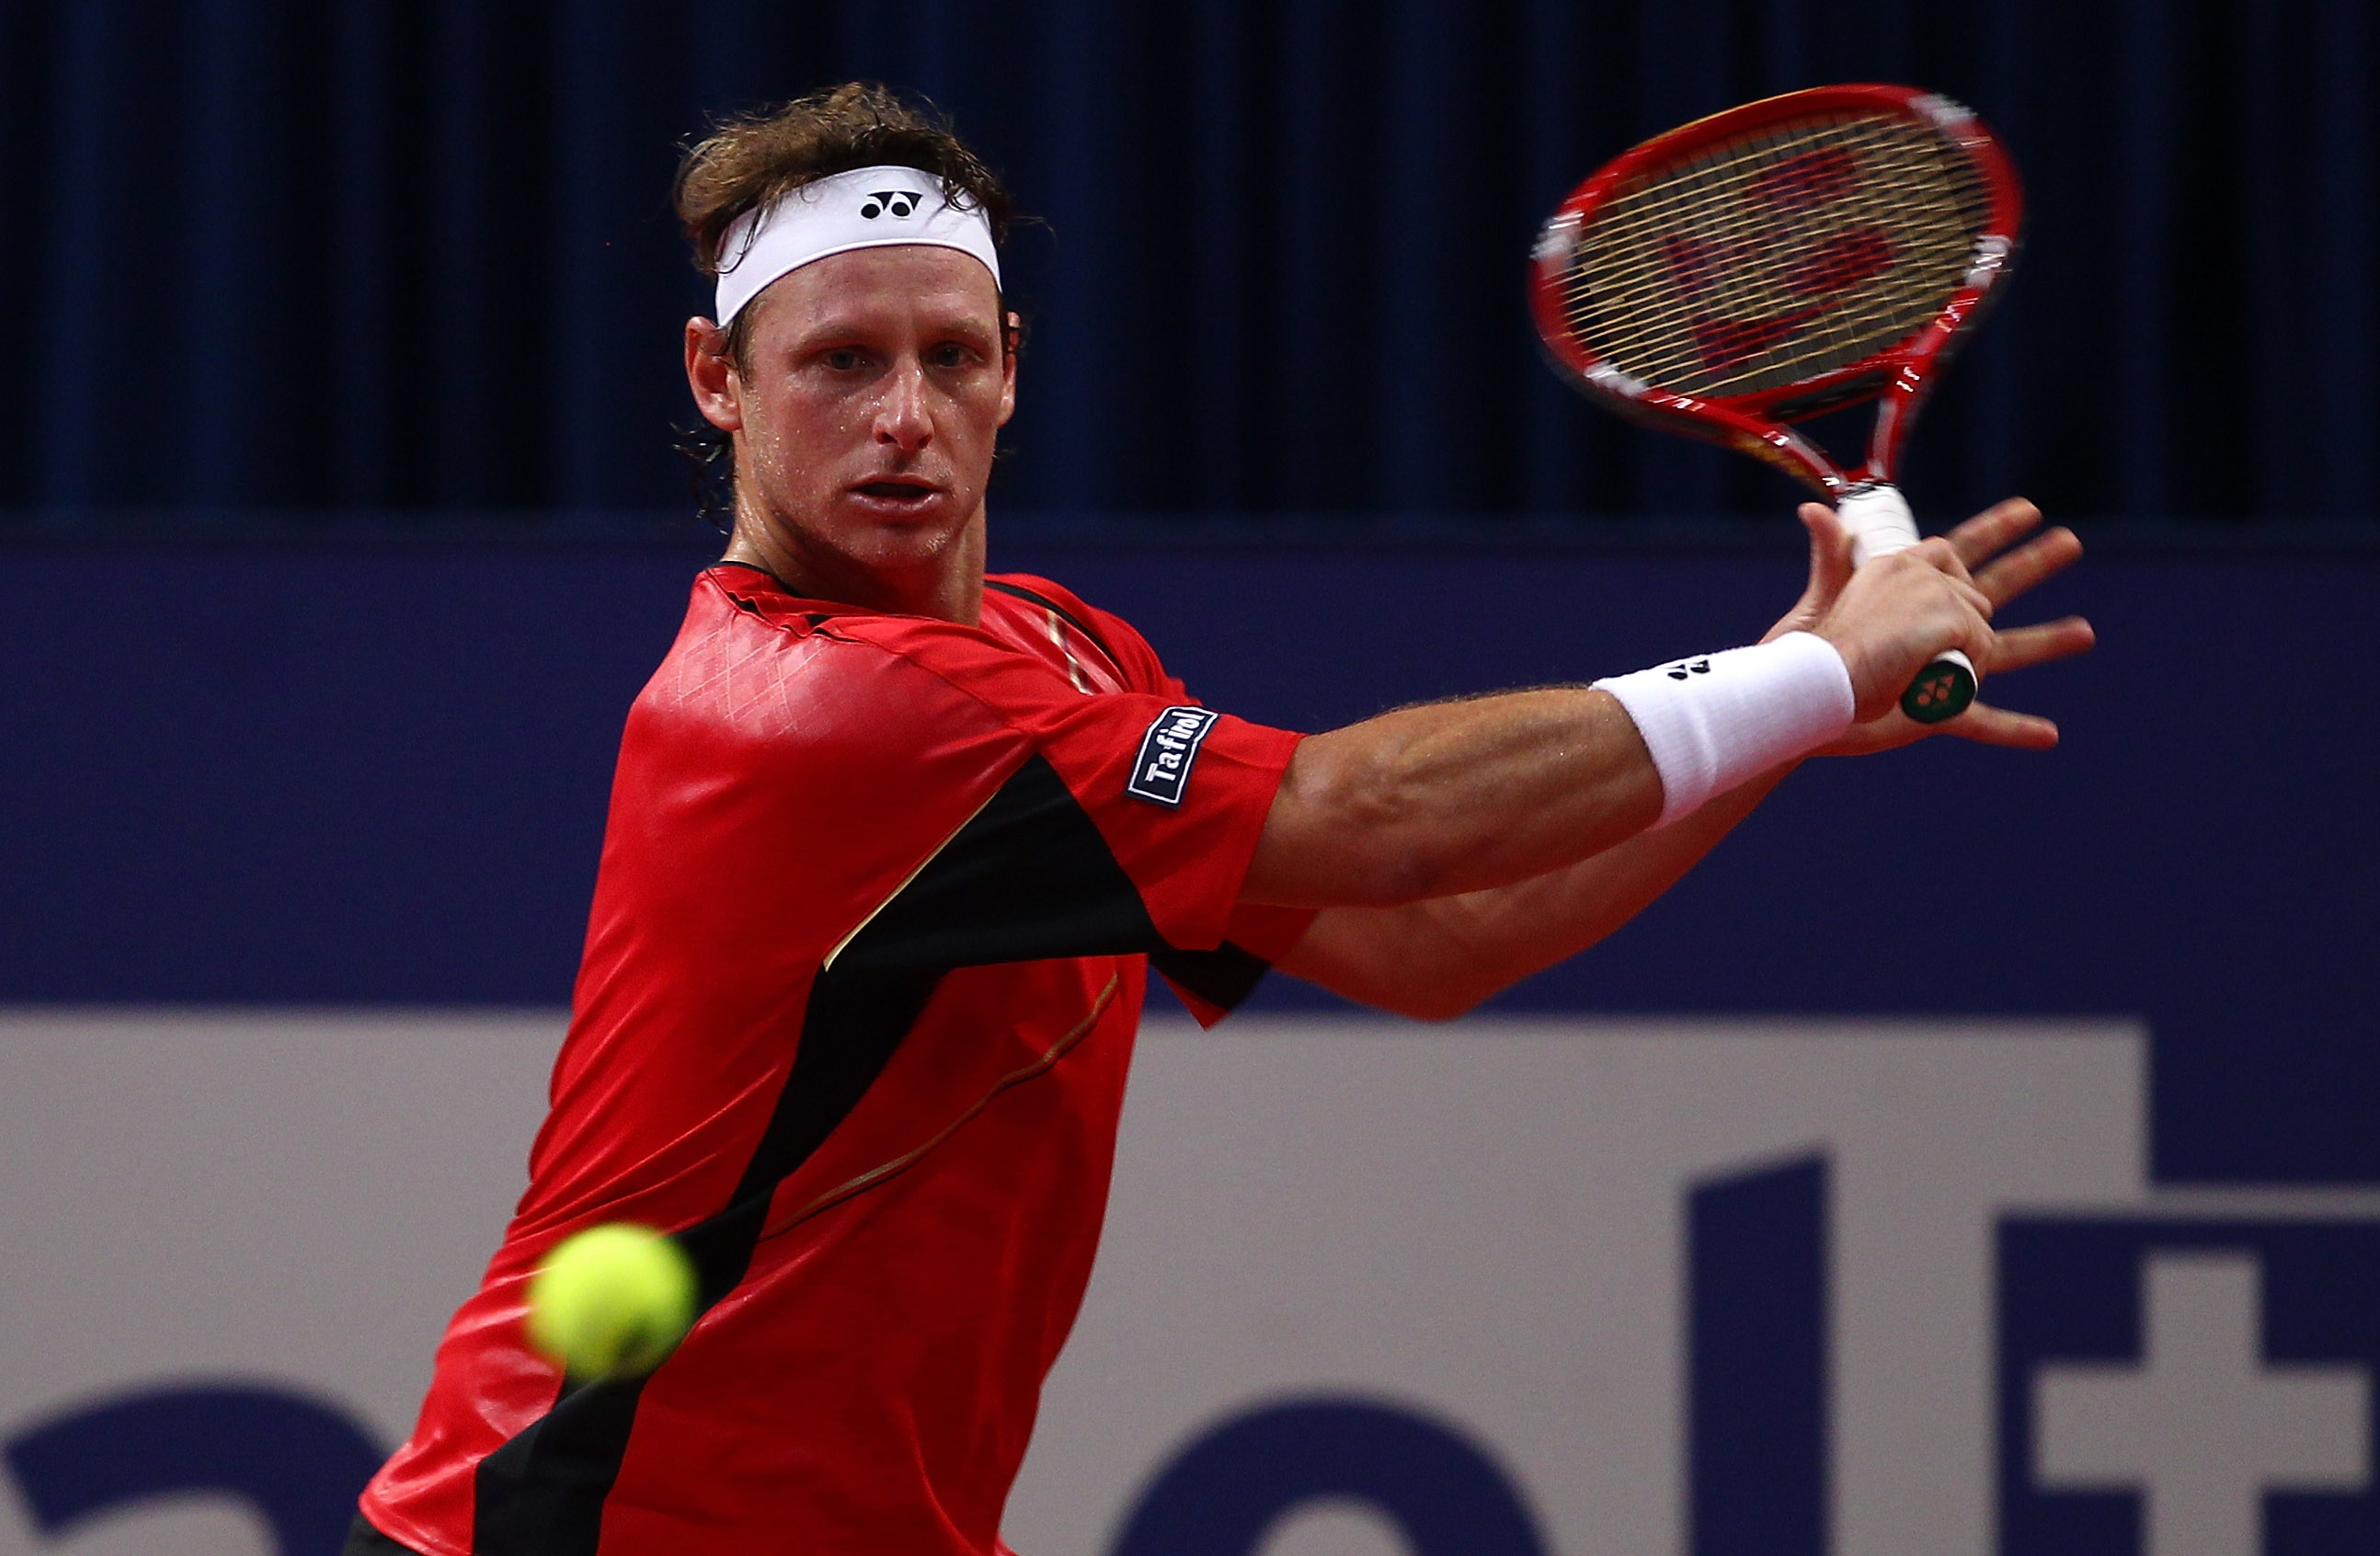 BASEL, SWITZERLAND - NOVEMBER 04:  David Nalbandian of Argentina in action in his match against Marin Cilic of Croatia during Day Four of the Davidoff Swiss Indoors Tennis at St Jakobshalle on November 4, 2010 in Basel, Switzerland.  (Photo by Julian Finn